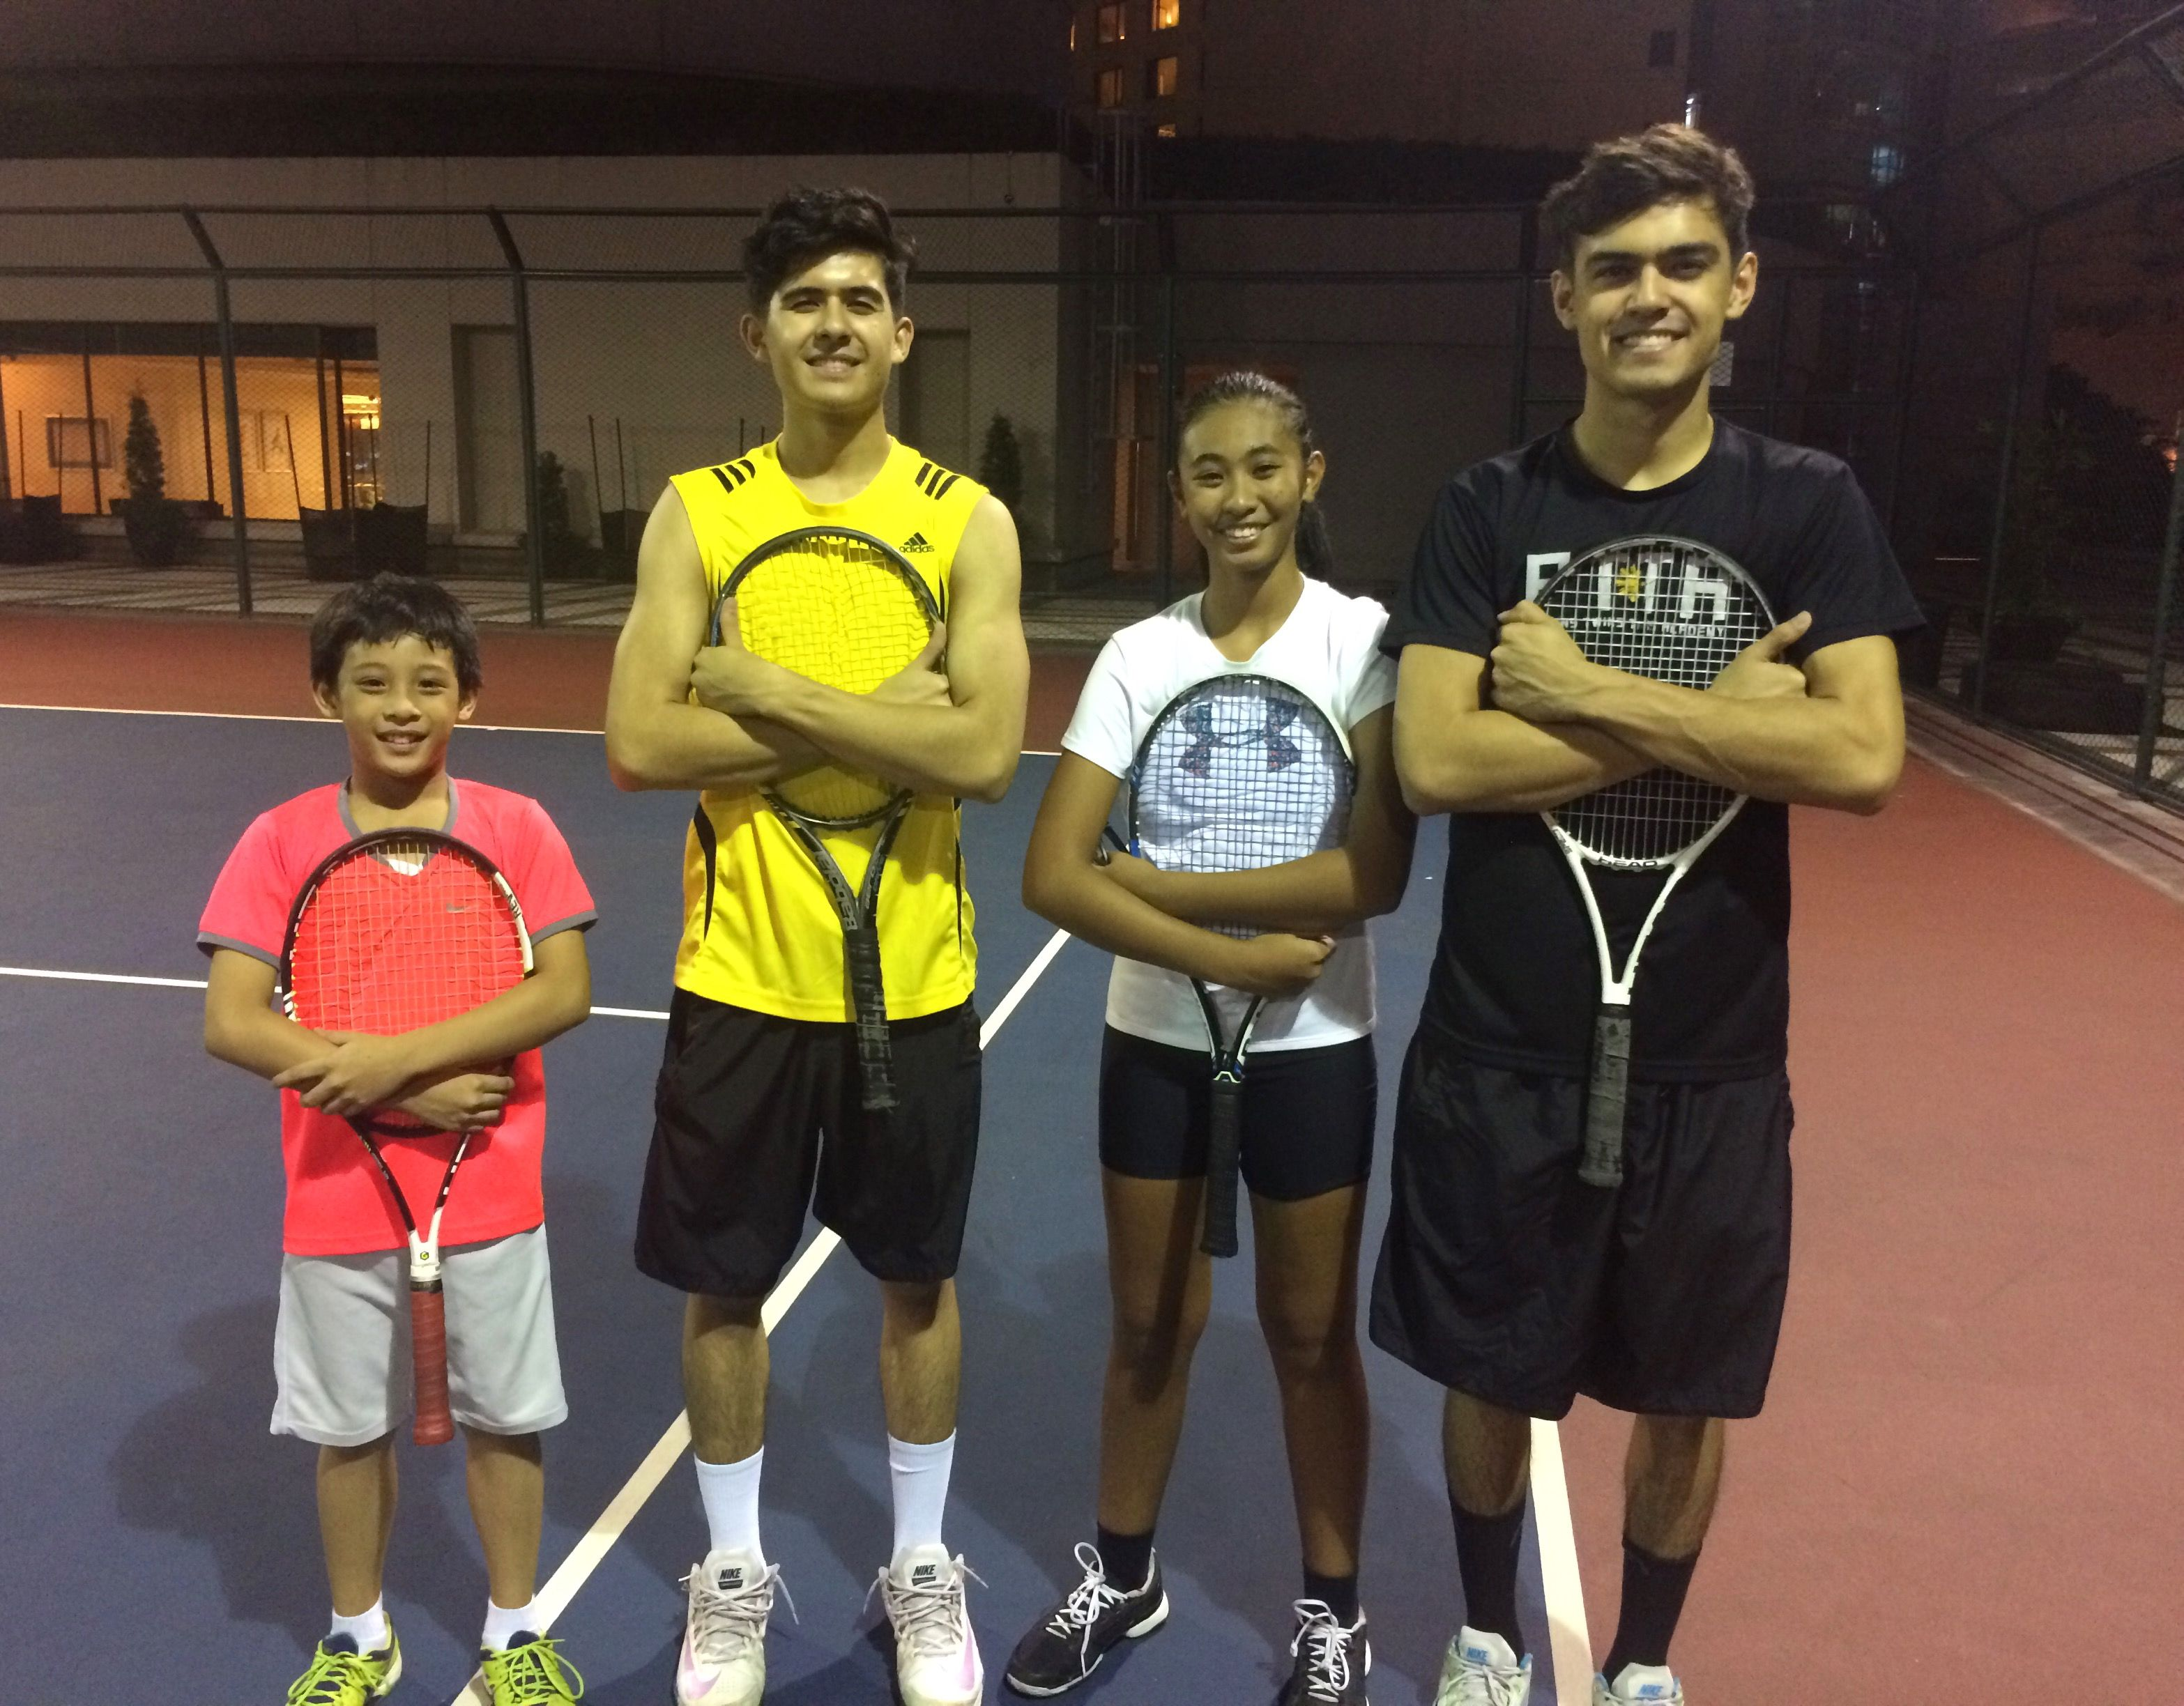 Philippine Tennis Players EdsaShangriLa